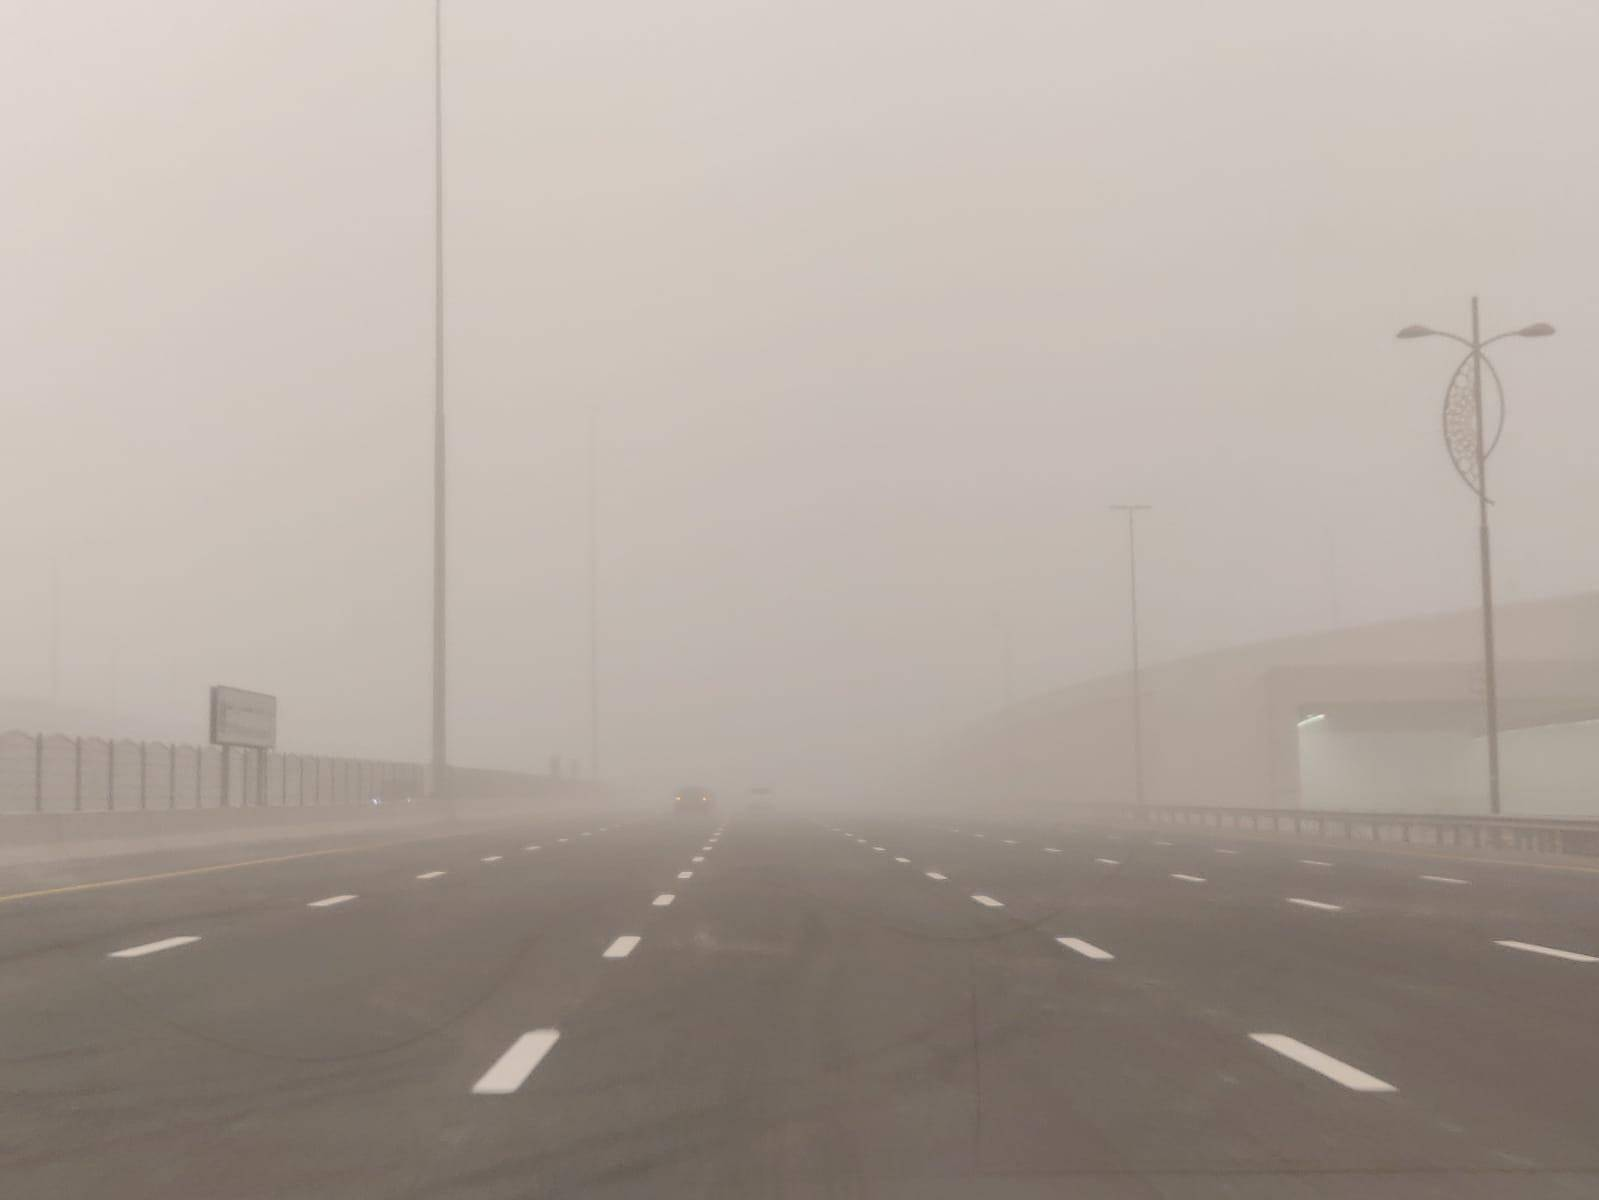 Video: Sandstorm, heavy in parts of uae on Friday